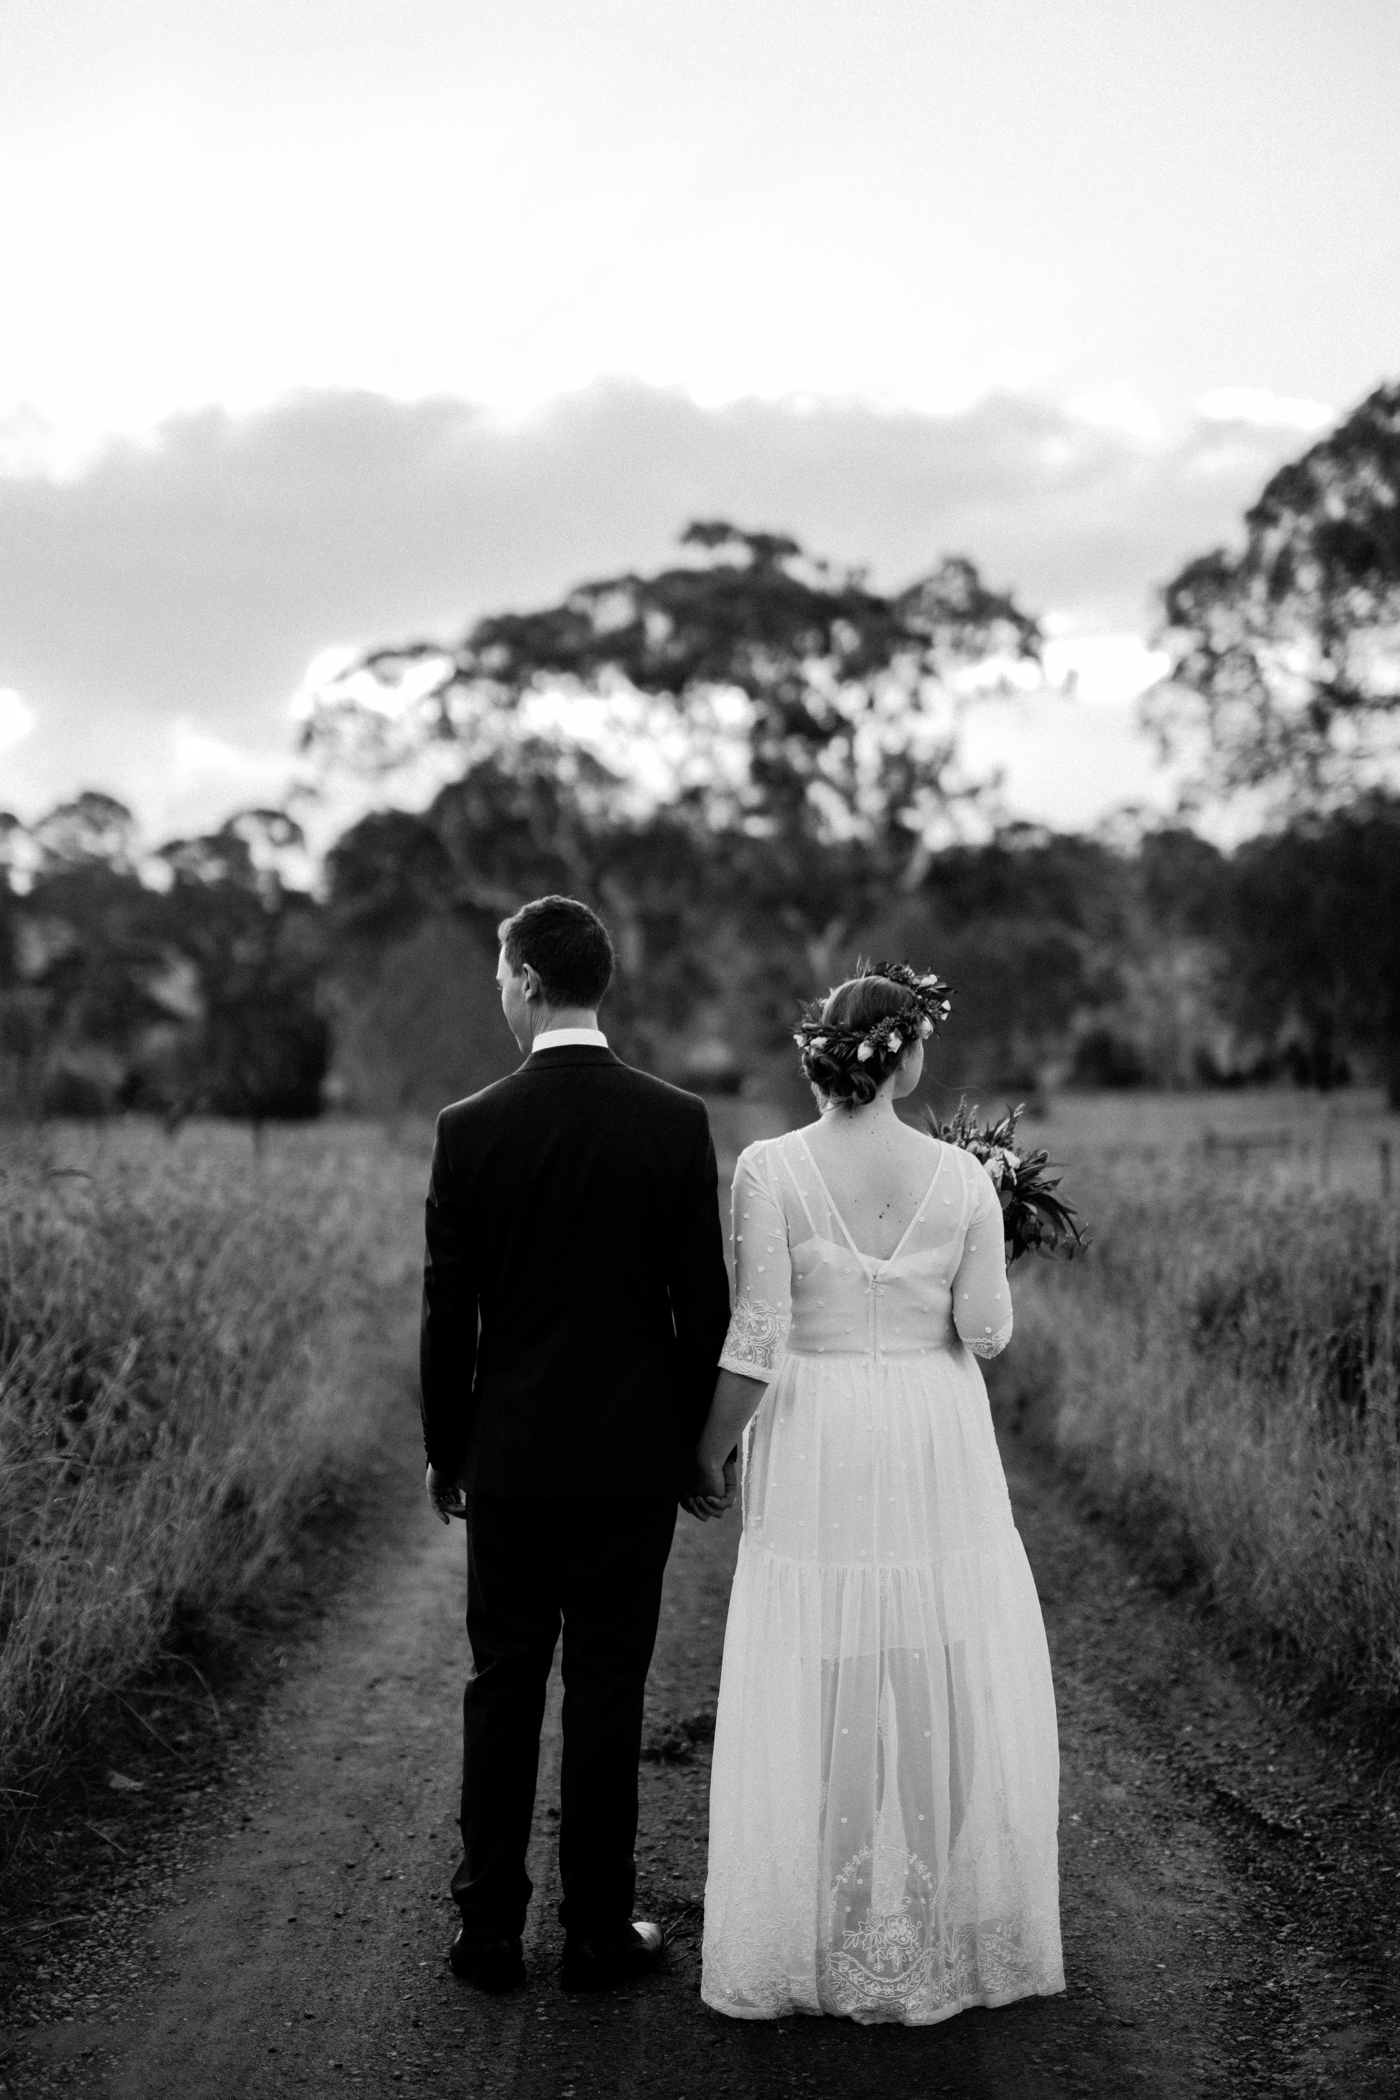 Jo & Aaron - Natural Wedding Photography in Adelaide - Beautiful, modern wedding photographer - Al Ru Farm Wedding Photography - Katherine Schultz_0029.jpg